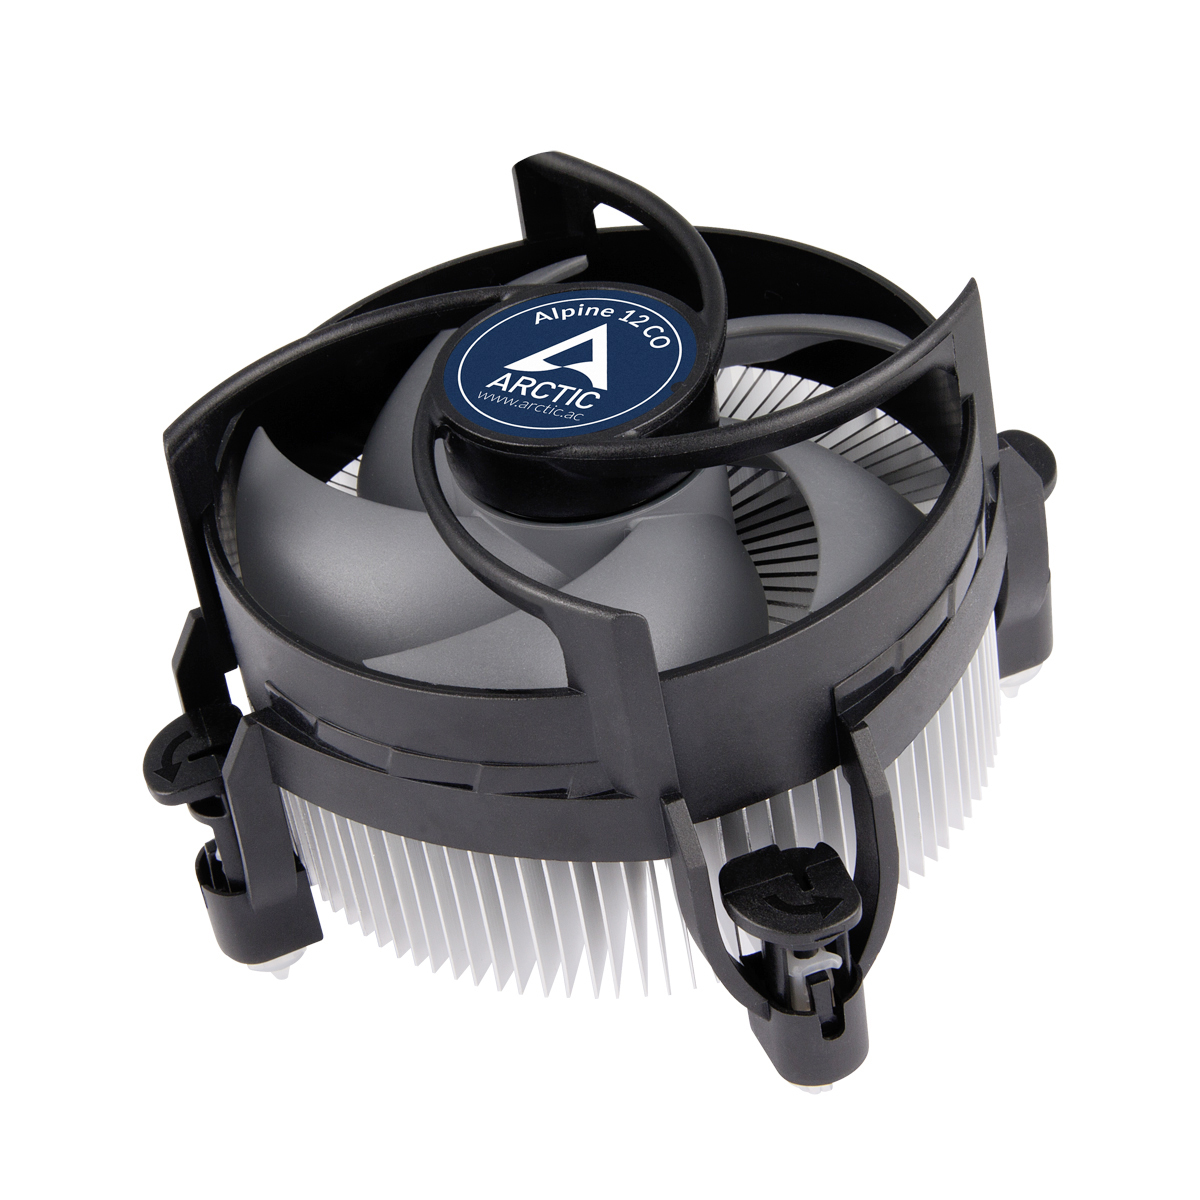 ACALP00031A ARCTIC Alpine 12 CO - Compact Intel CPU-Cooler for Continuous Operation - Ent01